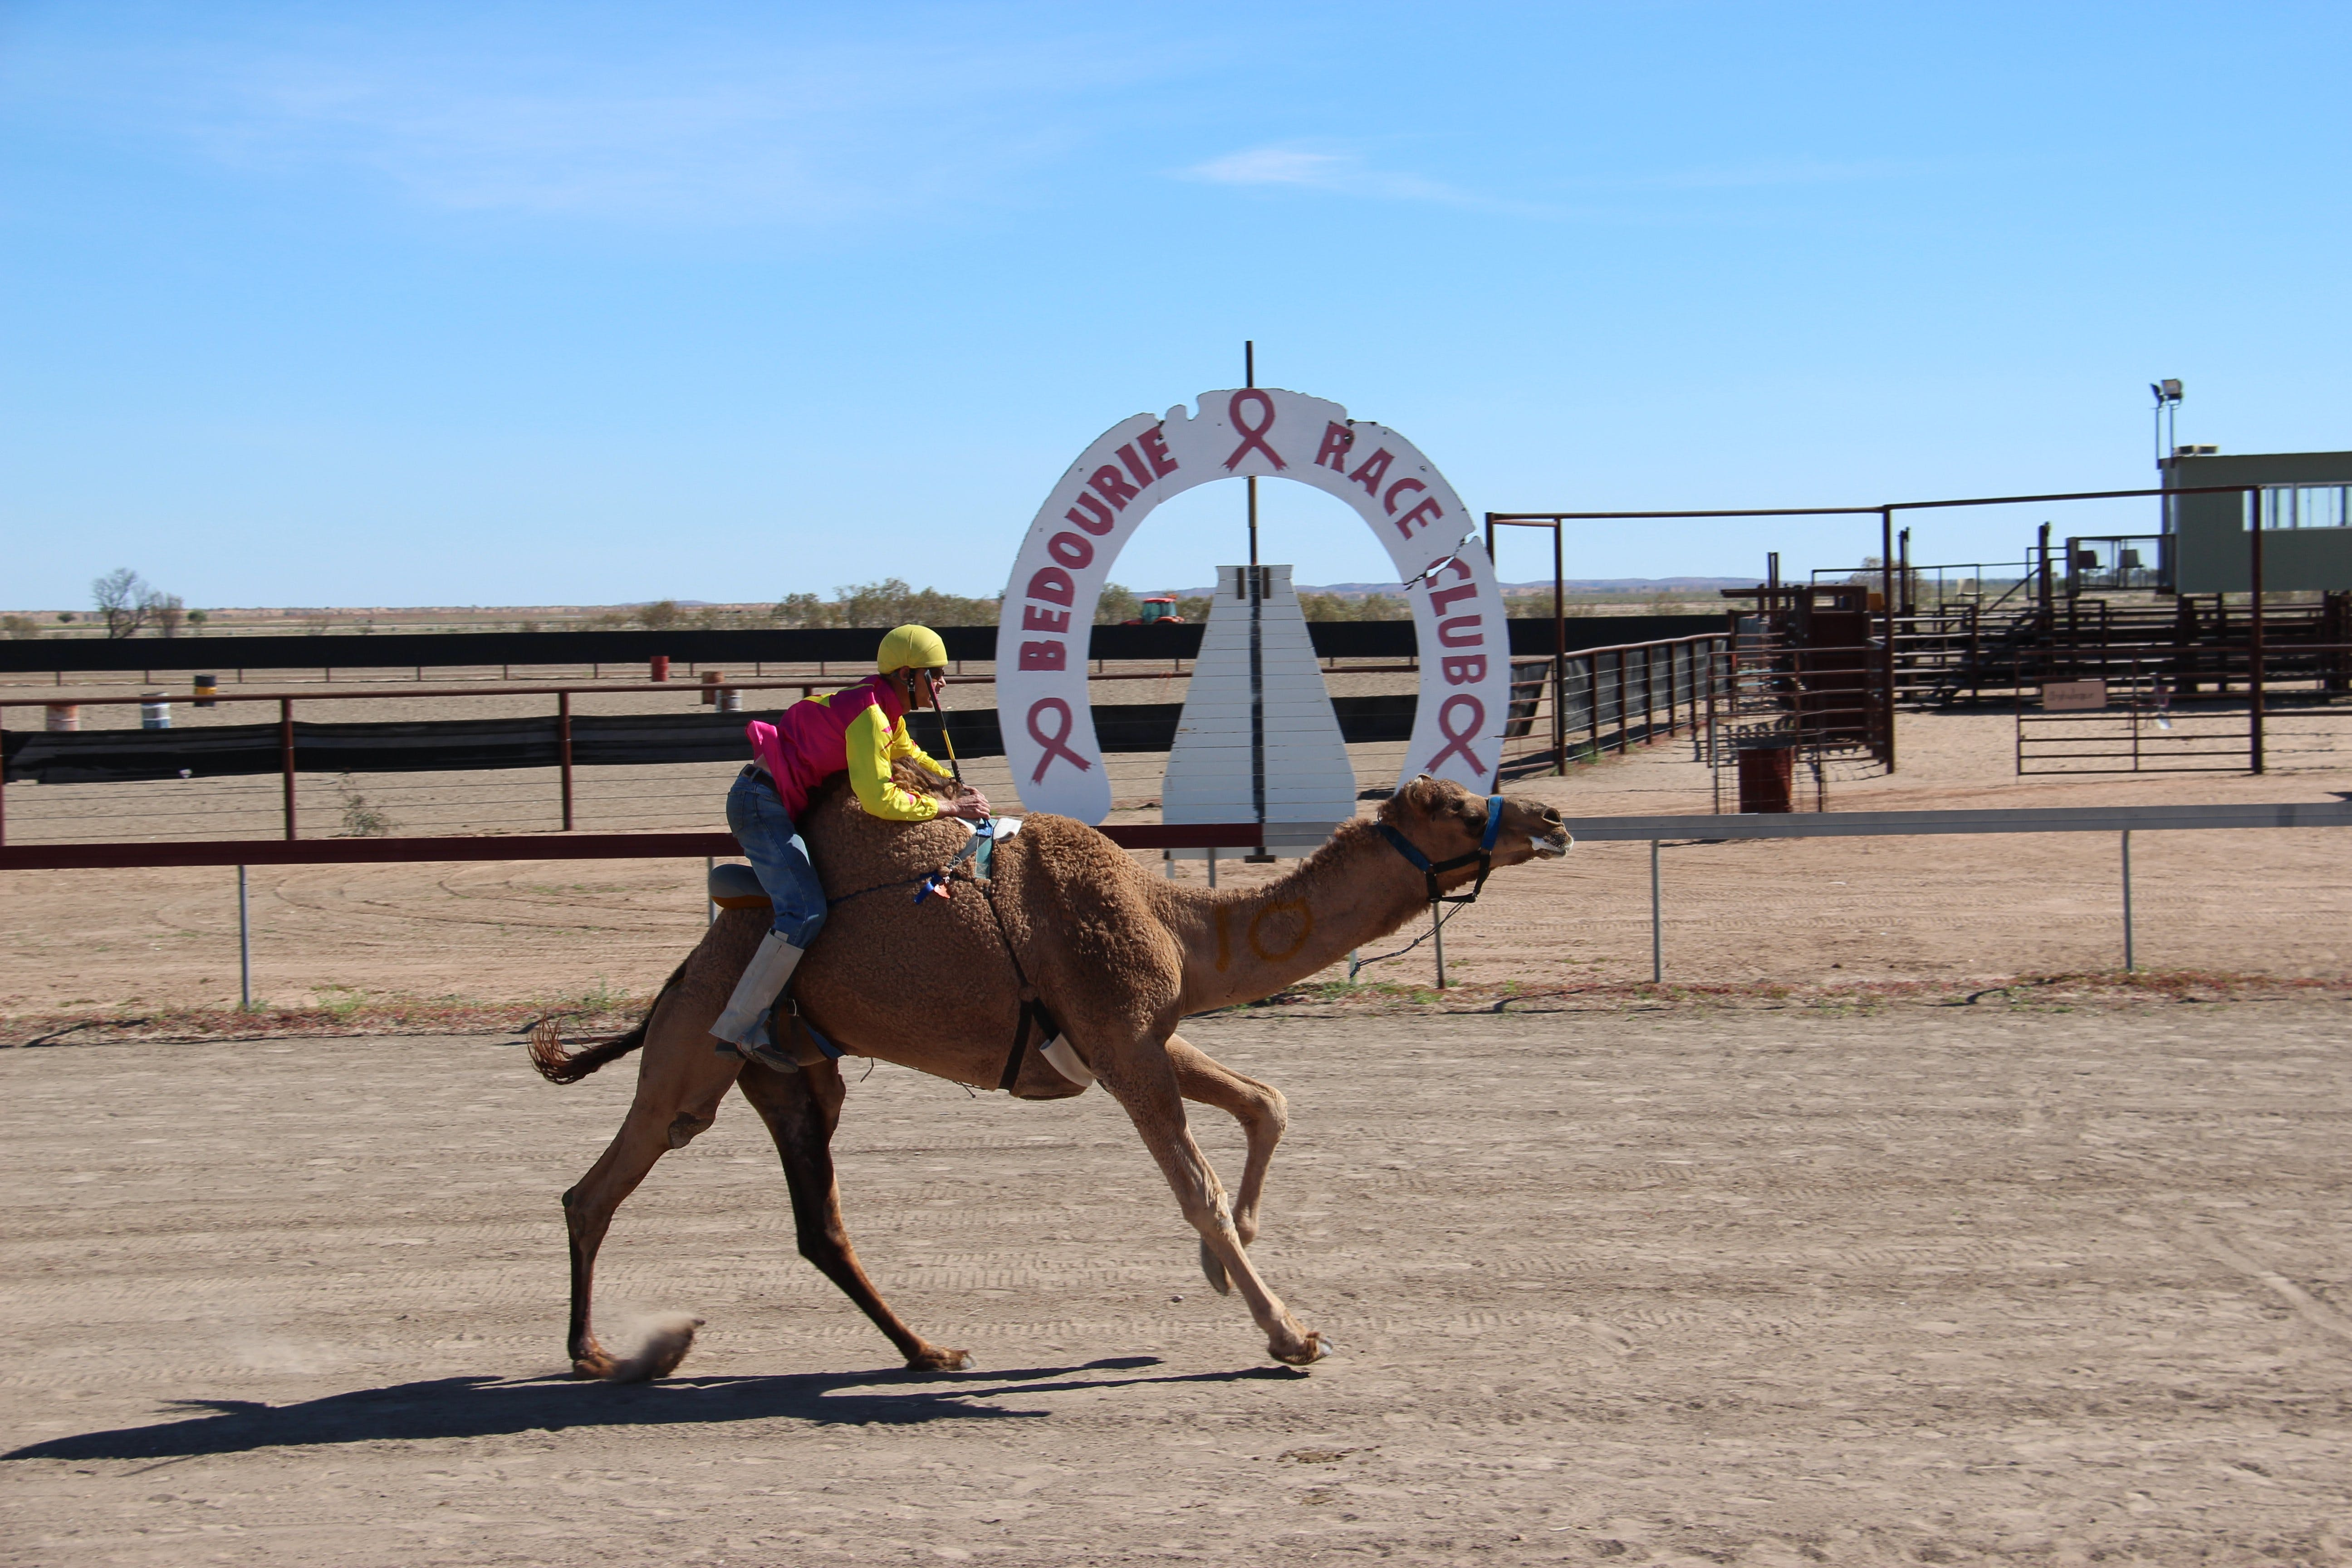 Bedourie Camel and Pig Races and Camp oven Cook-off - Bundaberg Accommodation